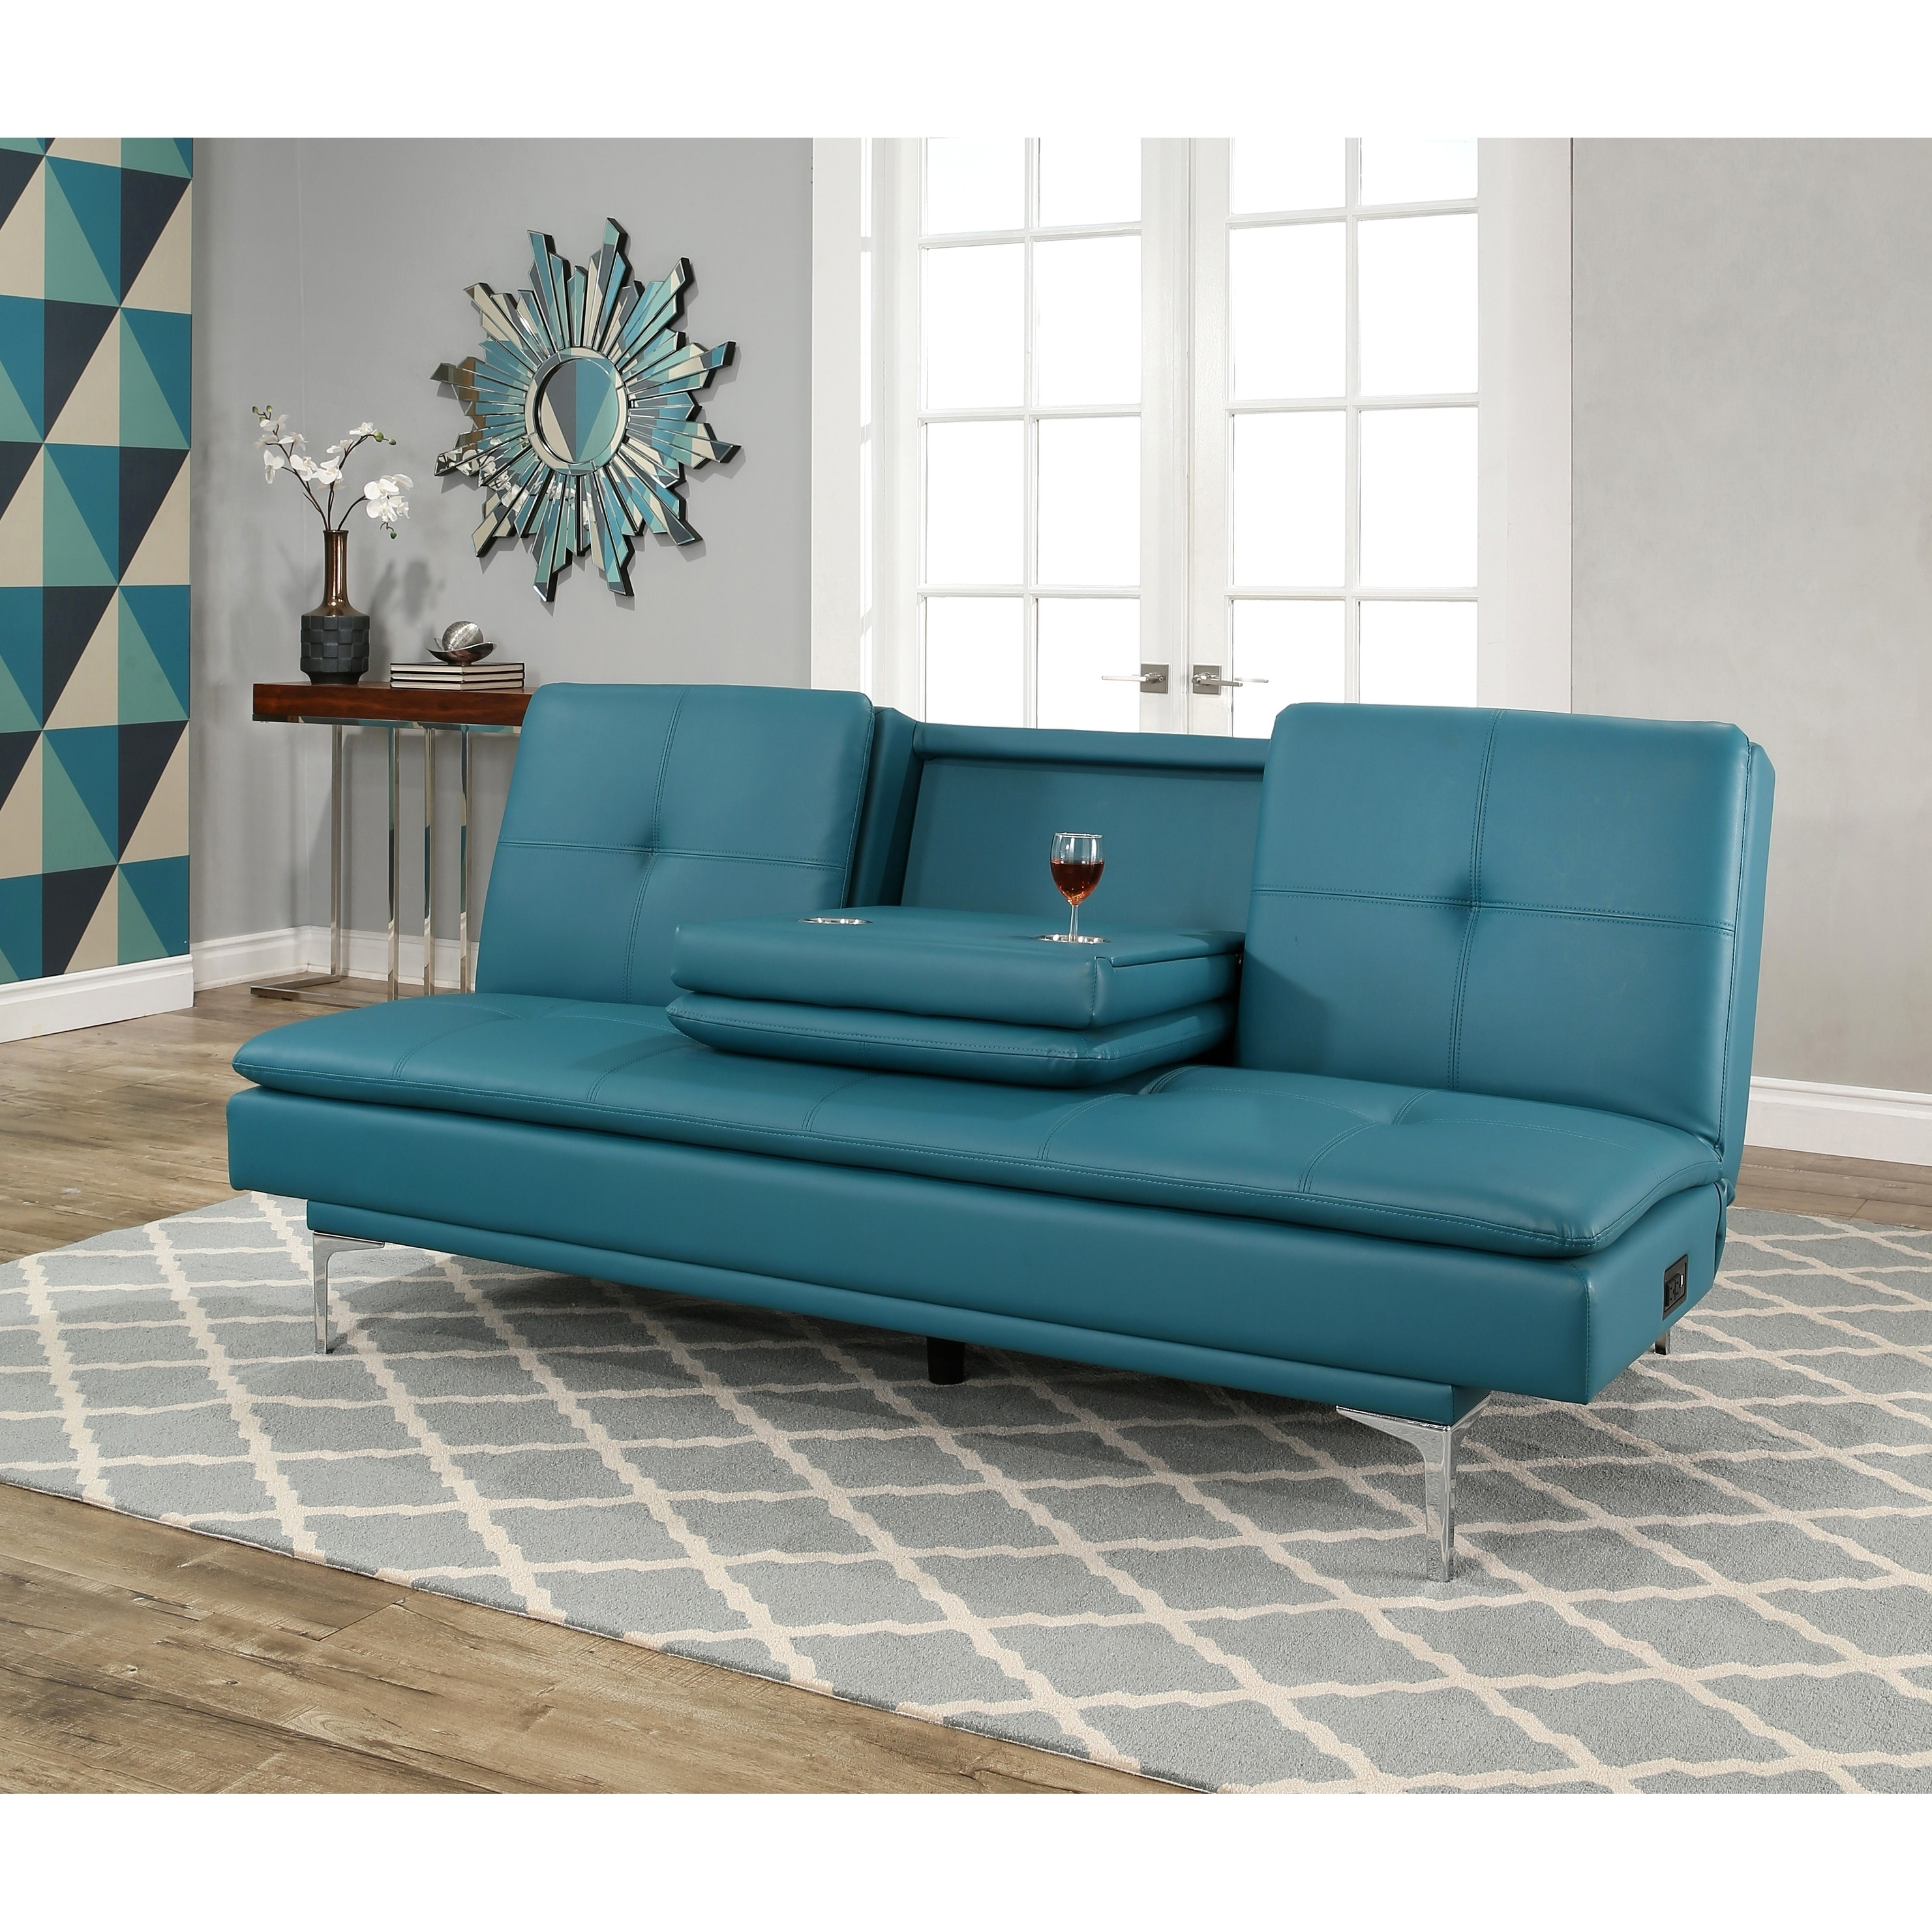 Turquoise Leather Sofa Turquoise Leather Couch Gopoint Me